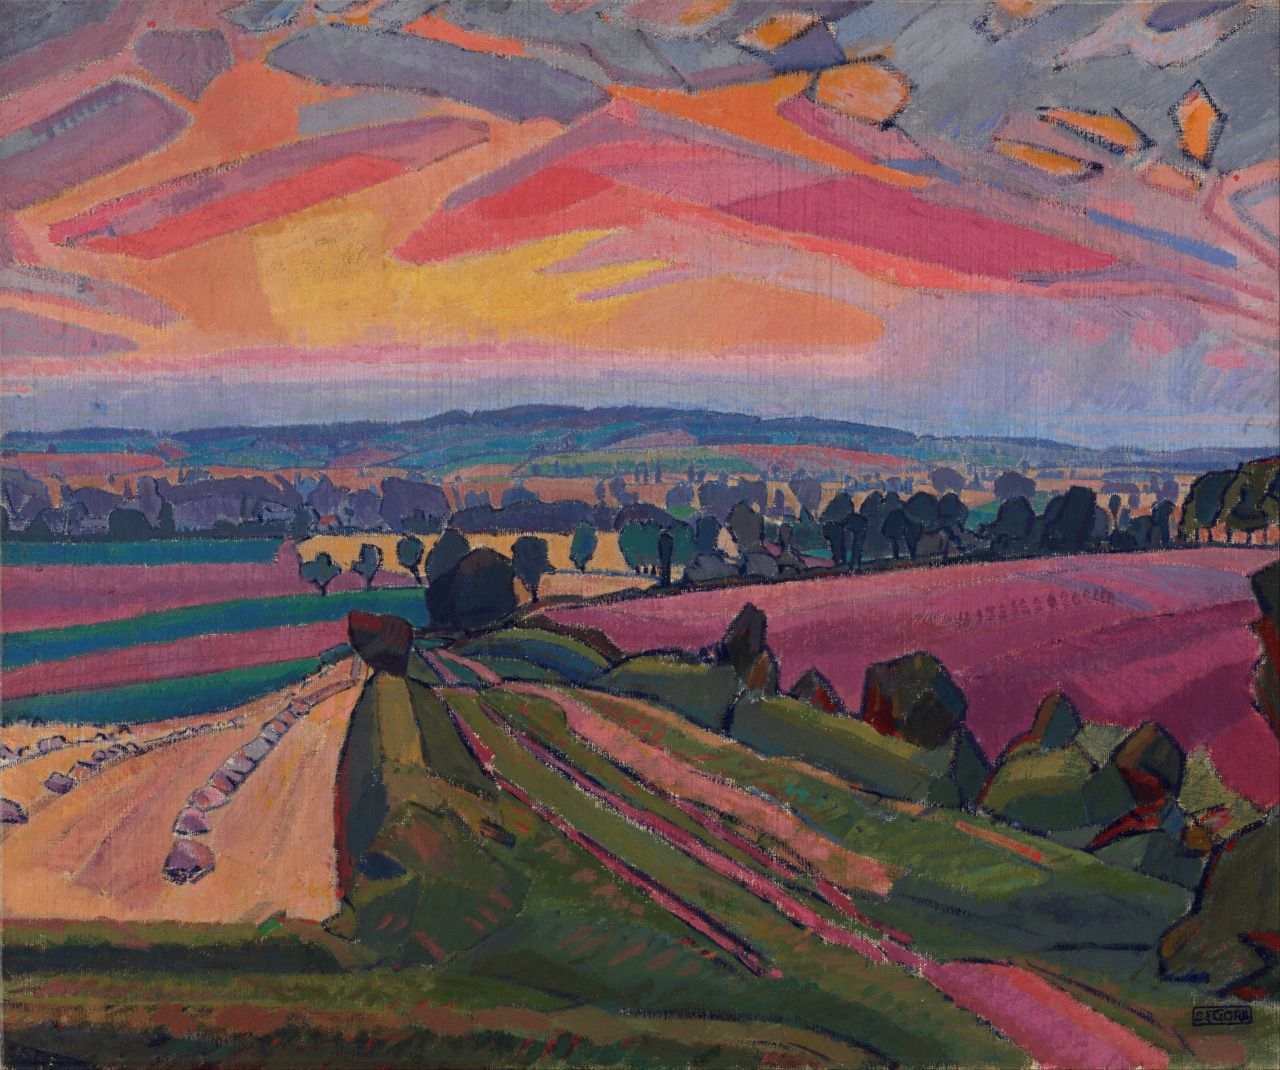 lawrenceleemagnuson:  Spencer Gore (1878-1914)The Icknield Way (The Cinder Path) 1912oil on canvas 83.9 x 96.6 cmArt Gallery of New South Wales,Sydney